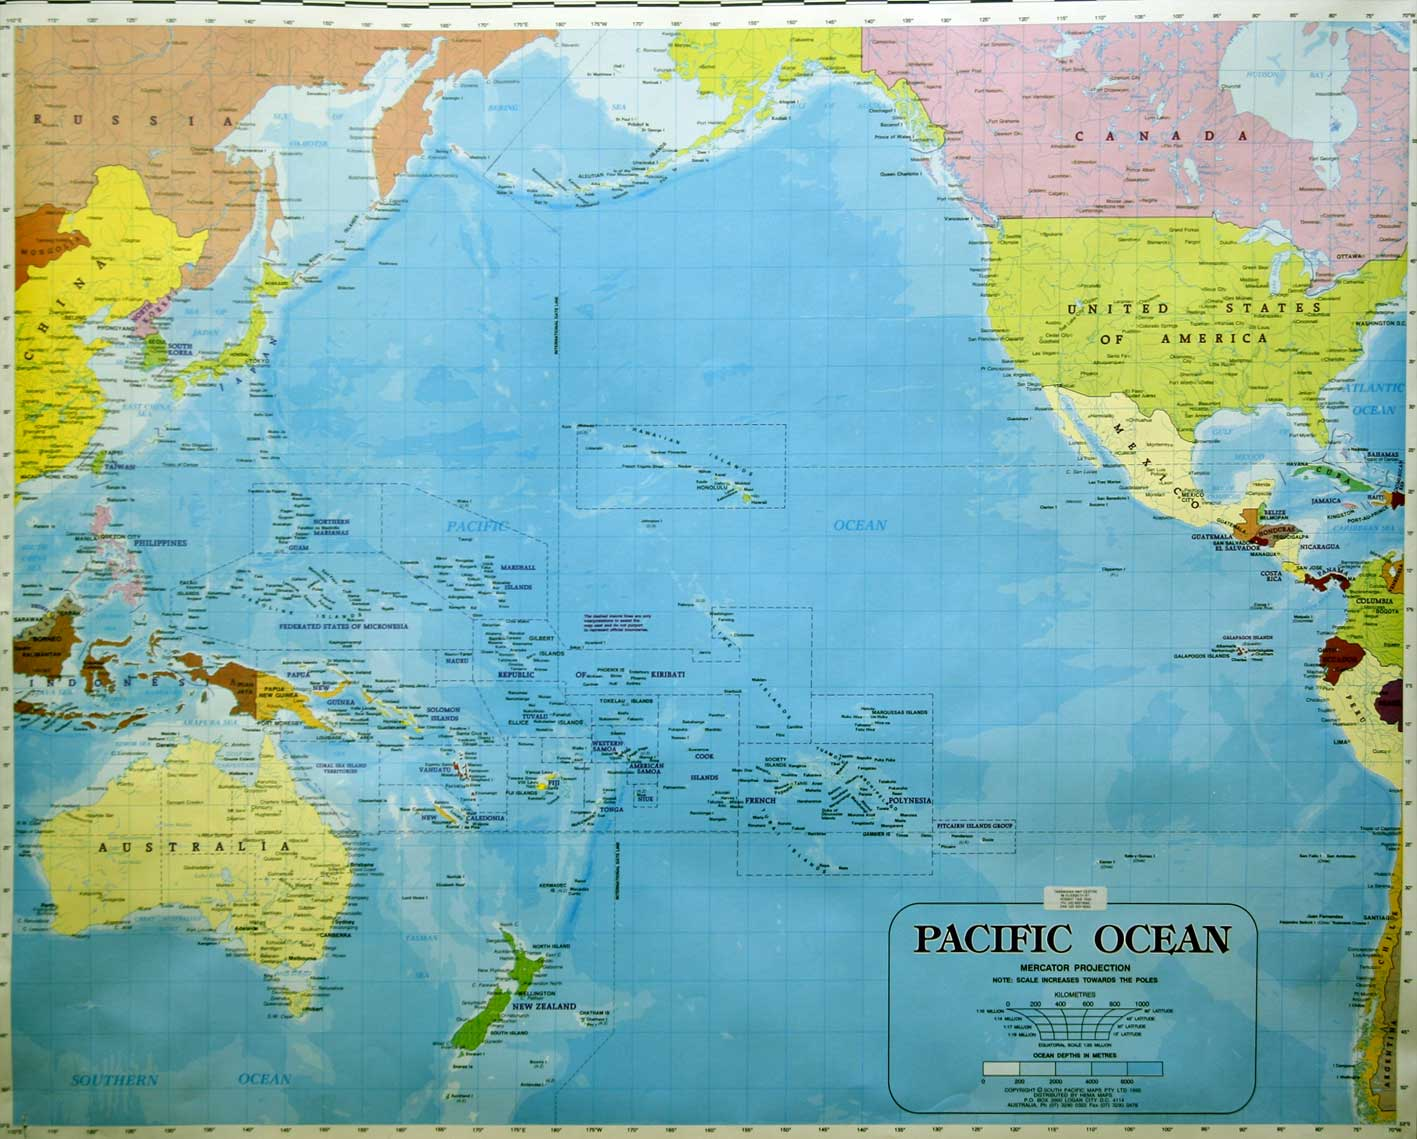 Pacific Ocean Topographic Map.Maps Of The South Pacific Ocean